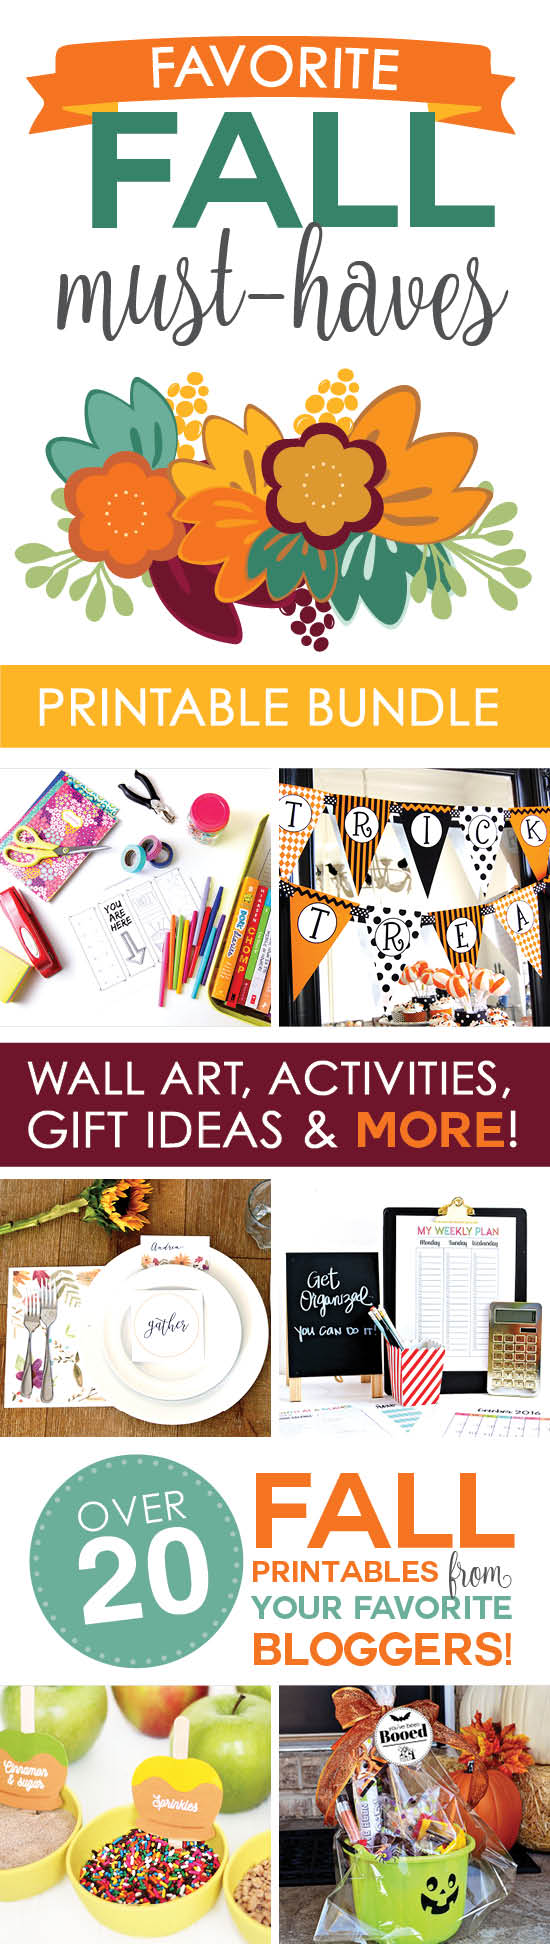 This GIGANTIC Fall Printable Bundle has everything you need to celebrate Fall this year! It includes printable from some of the best and most creative bloggers!